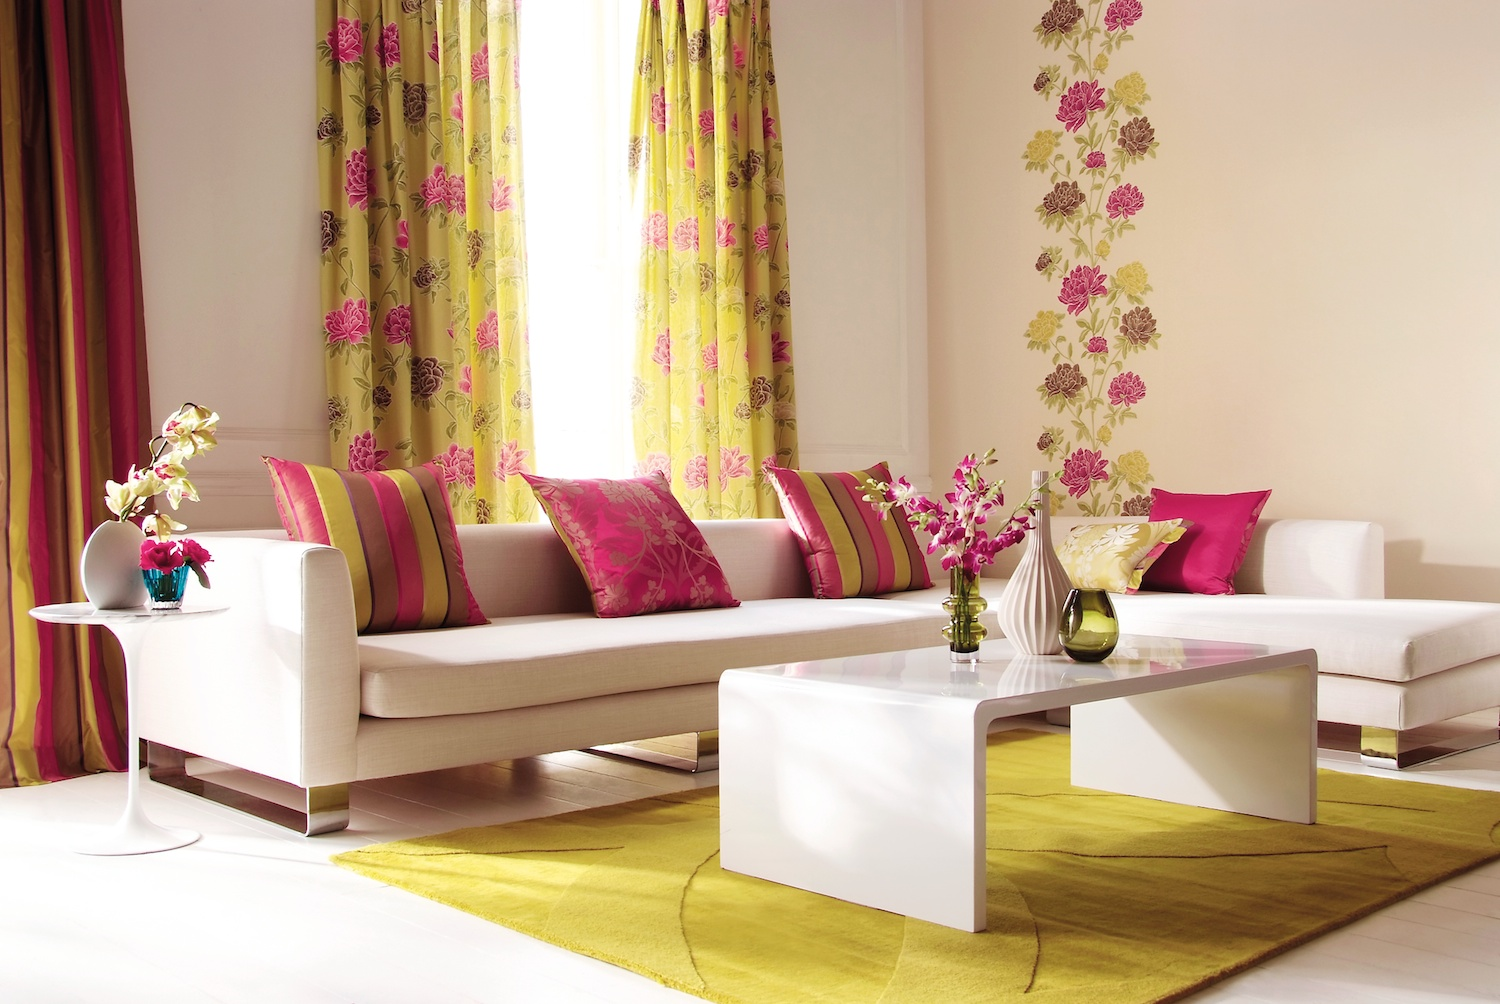 How to buy curtains drapes for home my decorative for Design my room online